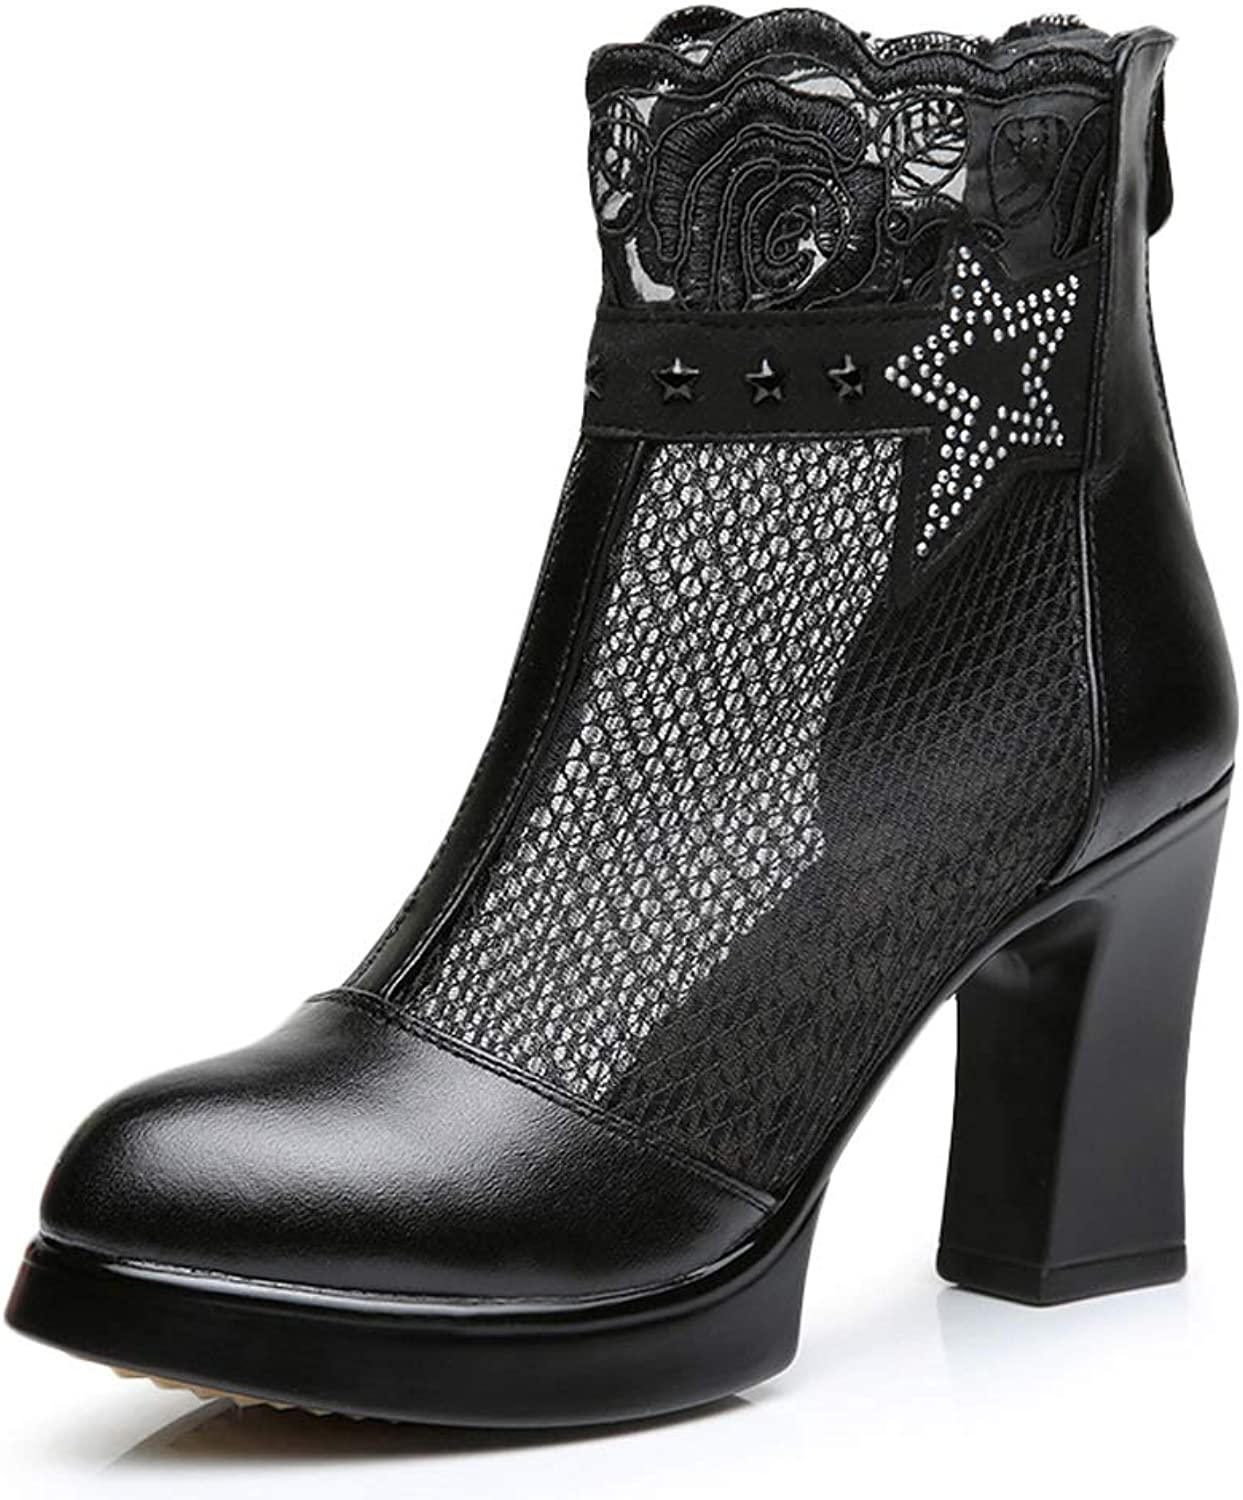 TARSHIN Single shoes Spring and Autumn Women's Net Boots Hollow High-Heeled Spring and Autumn Mesh Yarn Boots Mesh Boots